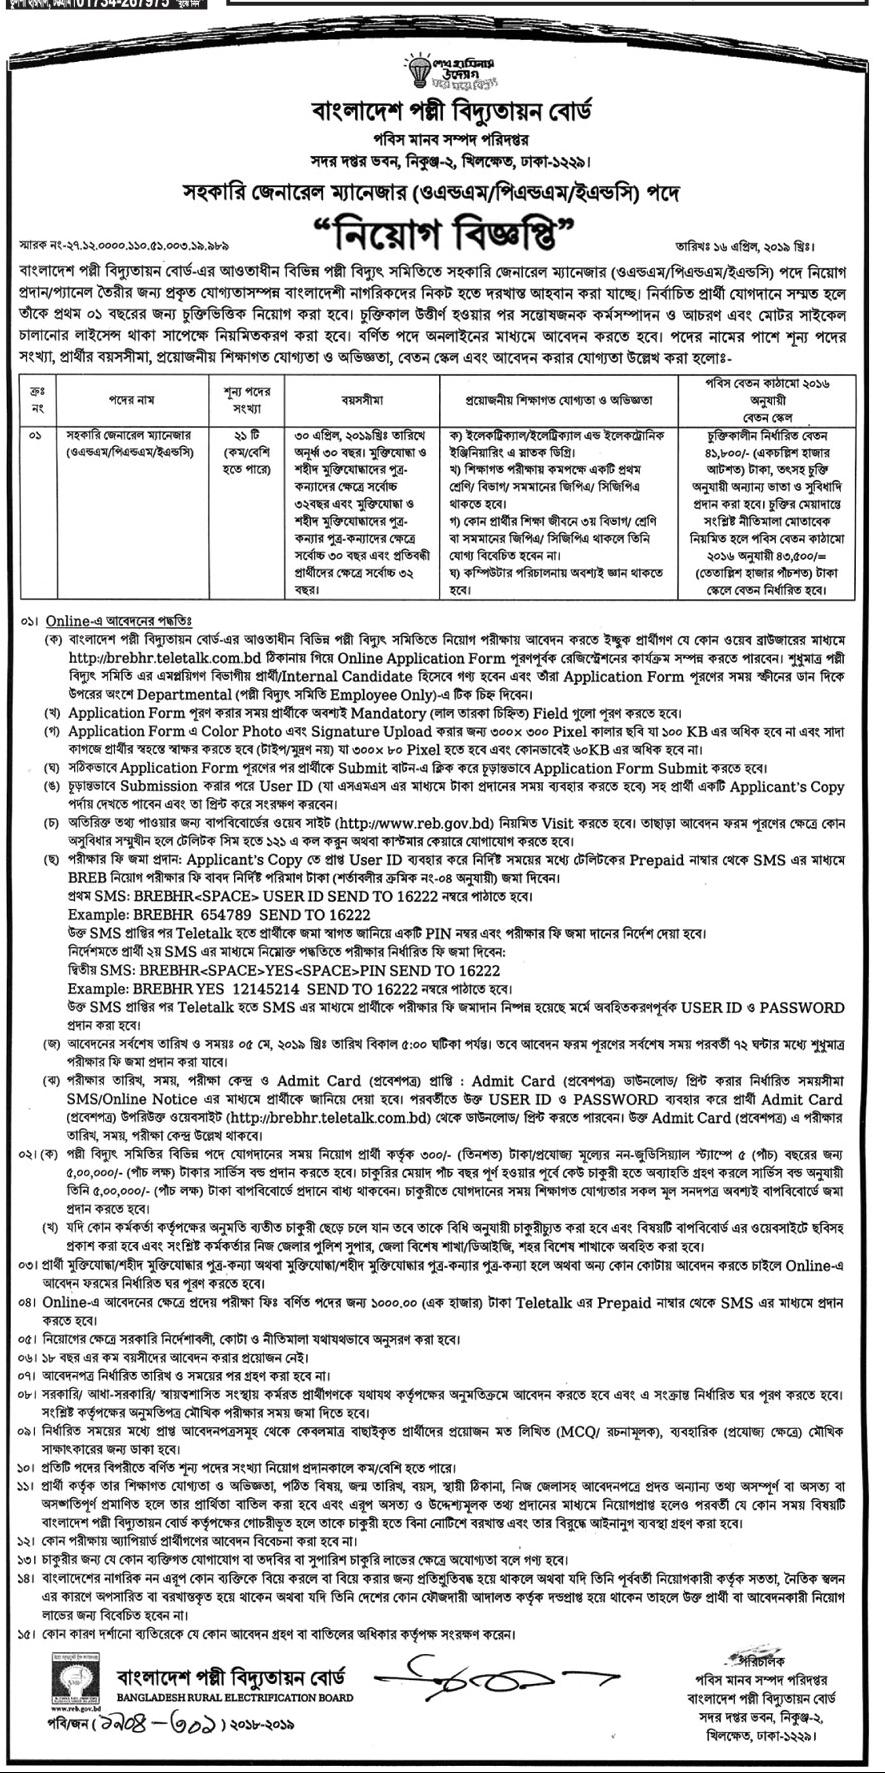 BD Govt Job Palli bidyut online application